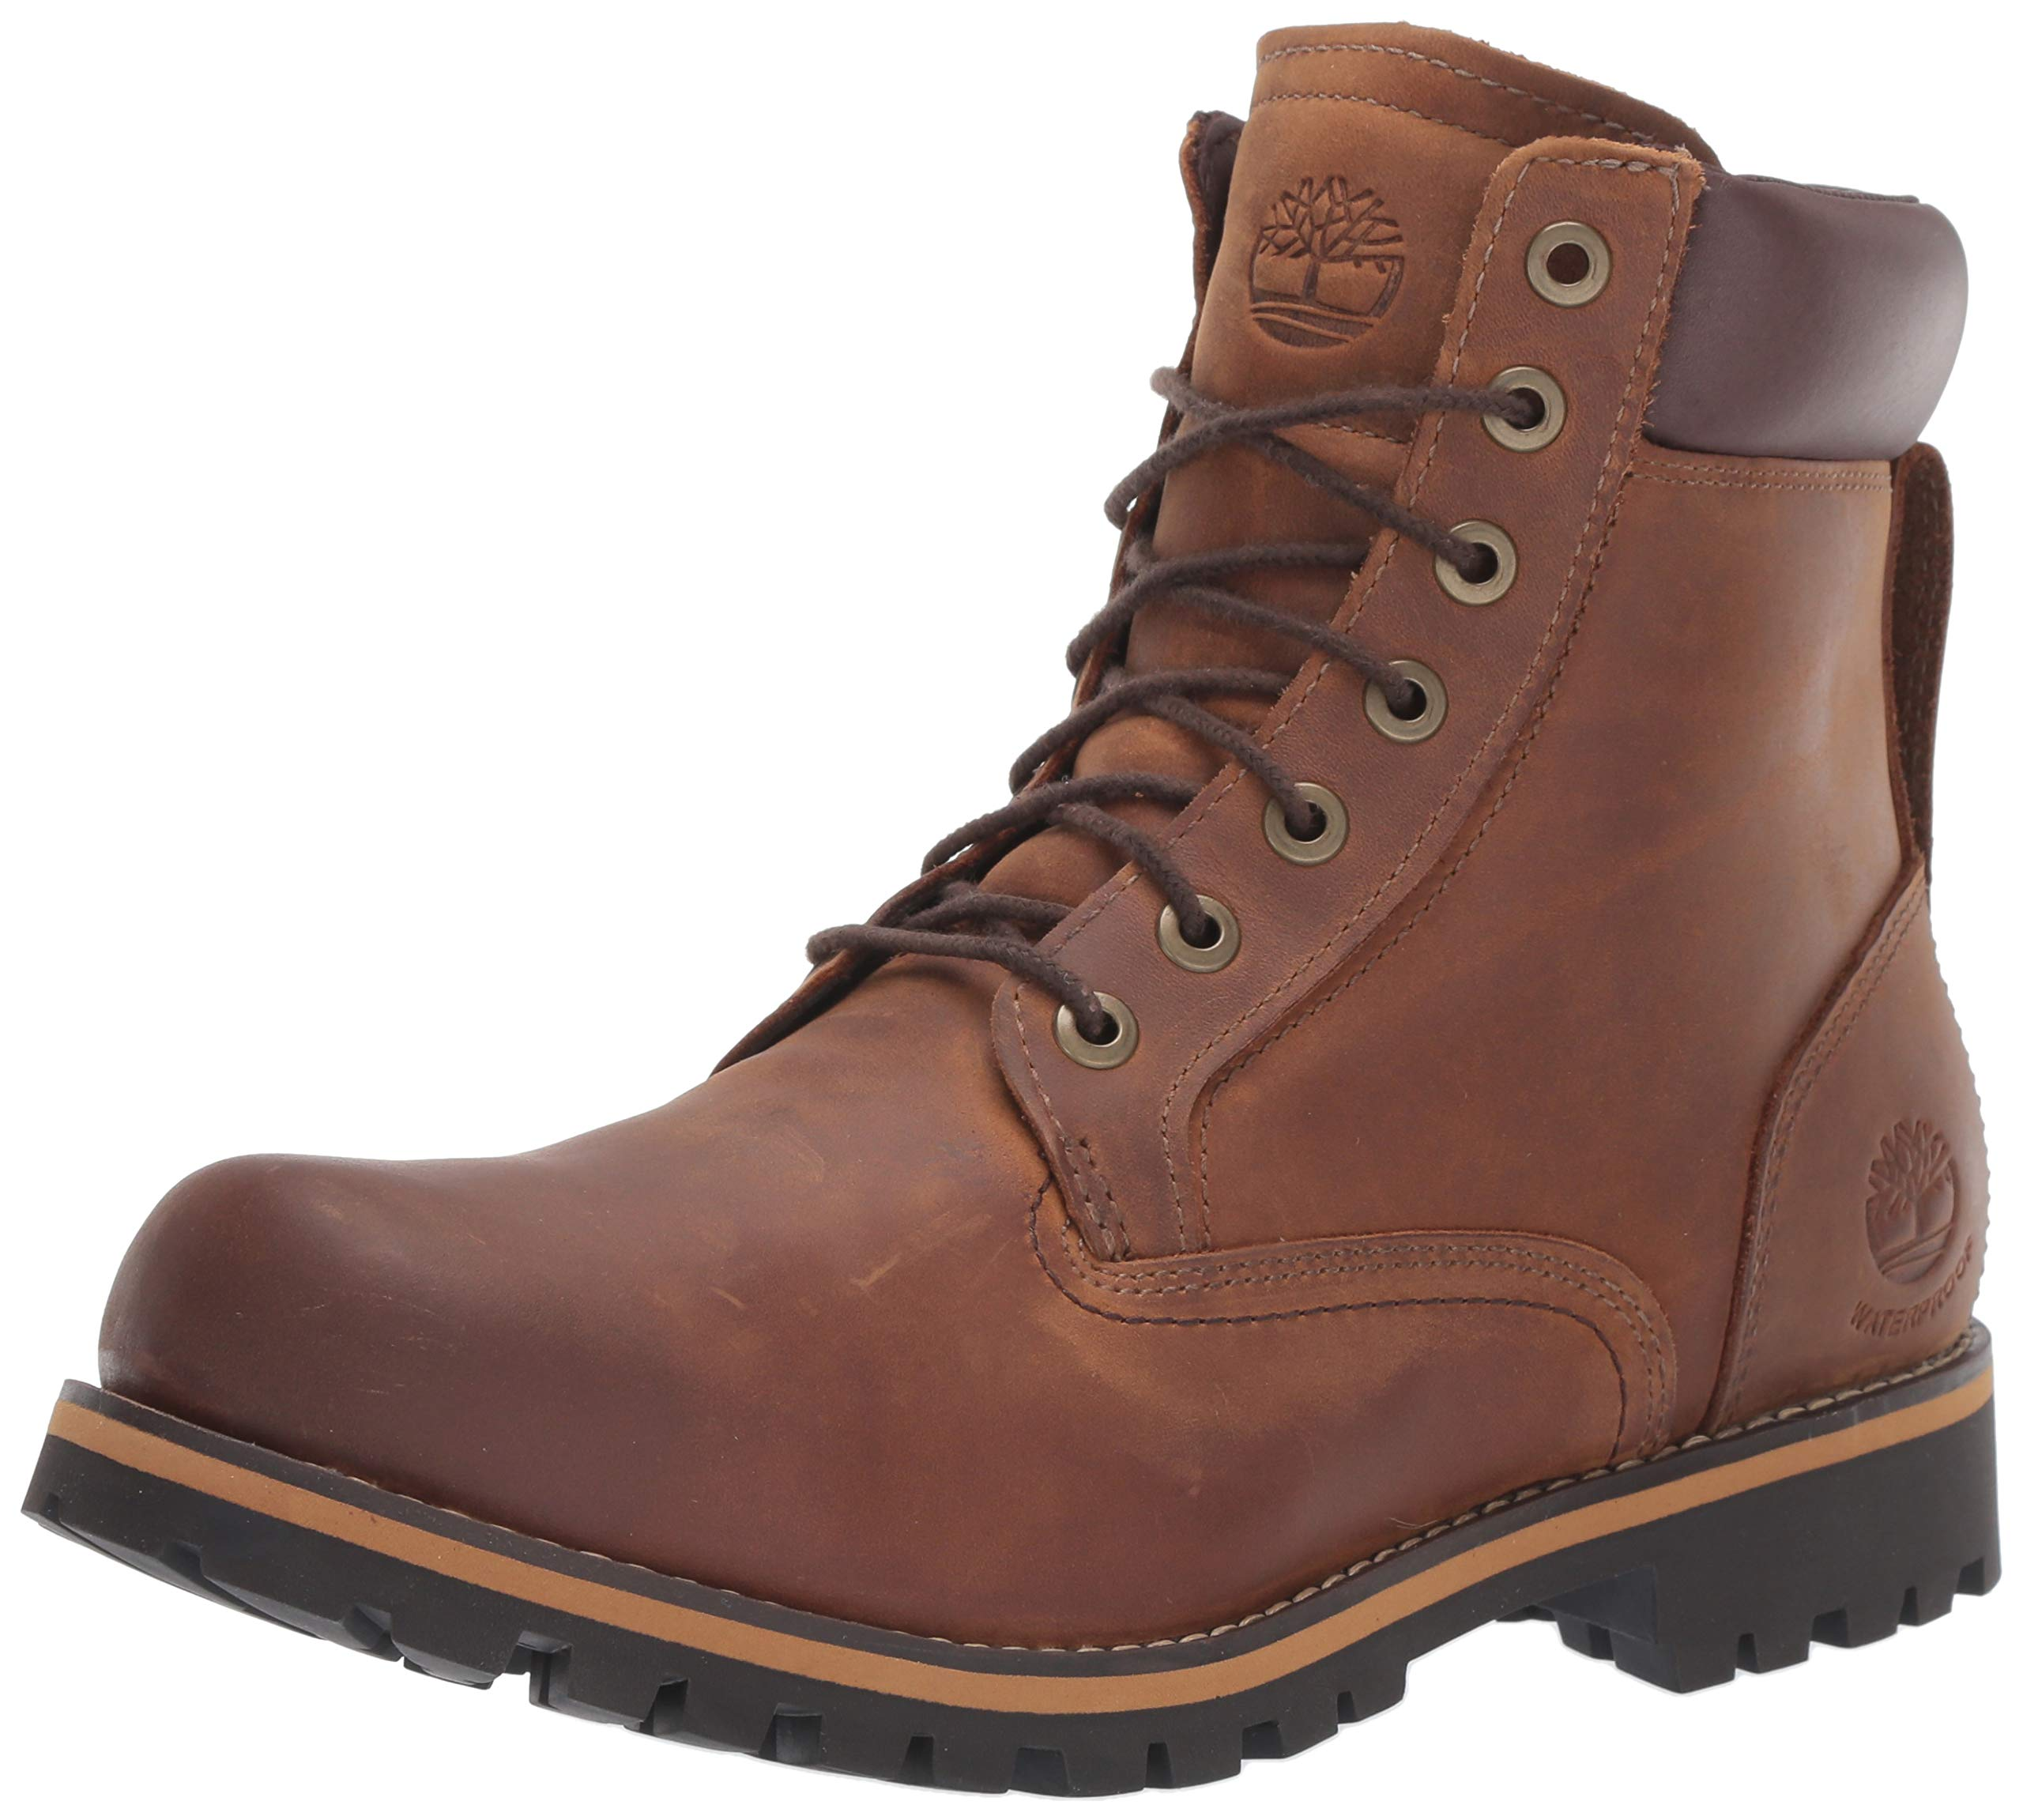 Timberland Men's Earthkeepers Rugged Boot, Medium brown full grain, 8.5 W US